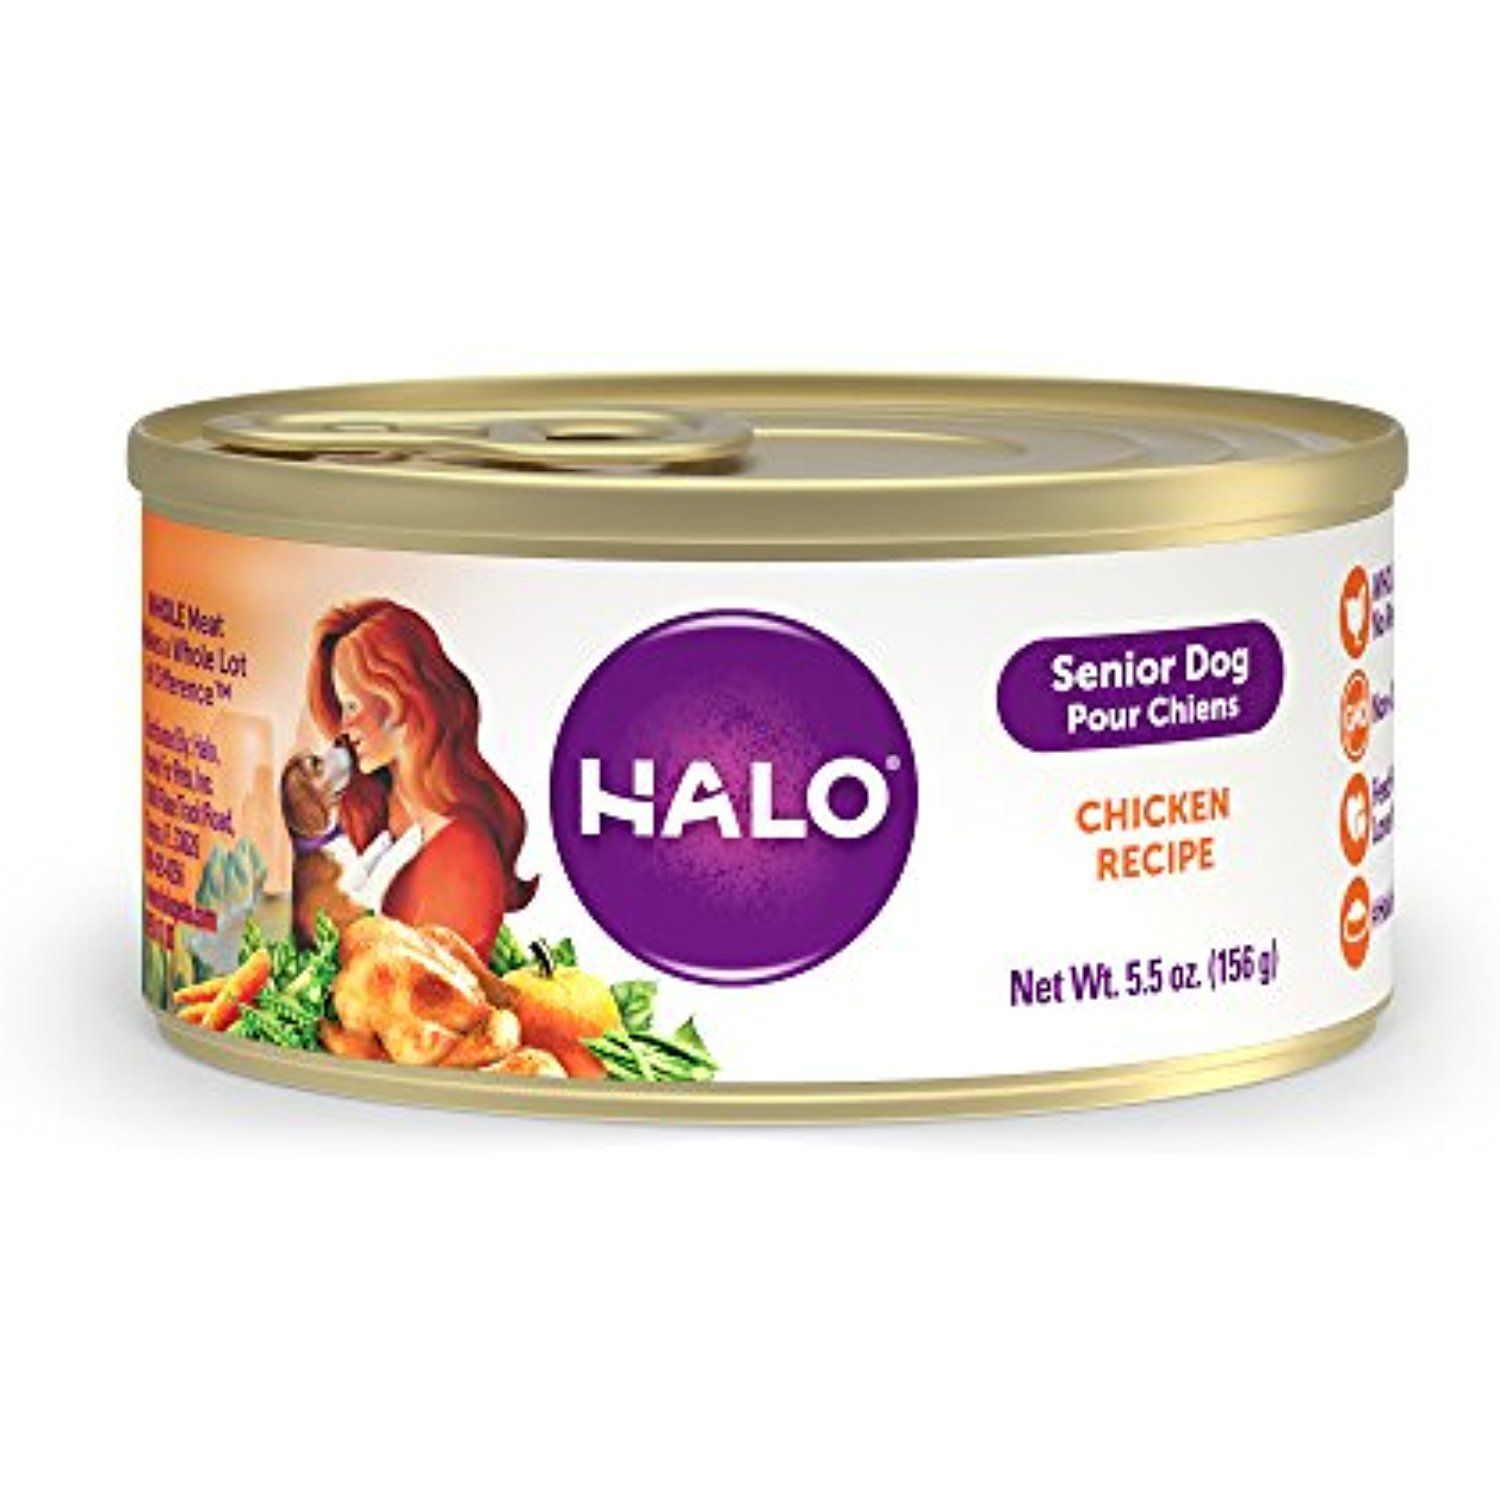 Halo purely for pets 60071 chicken recipe for senior dog